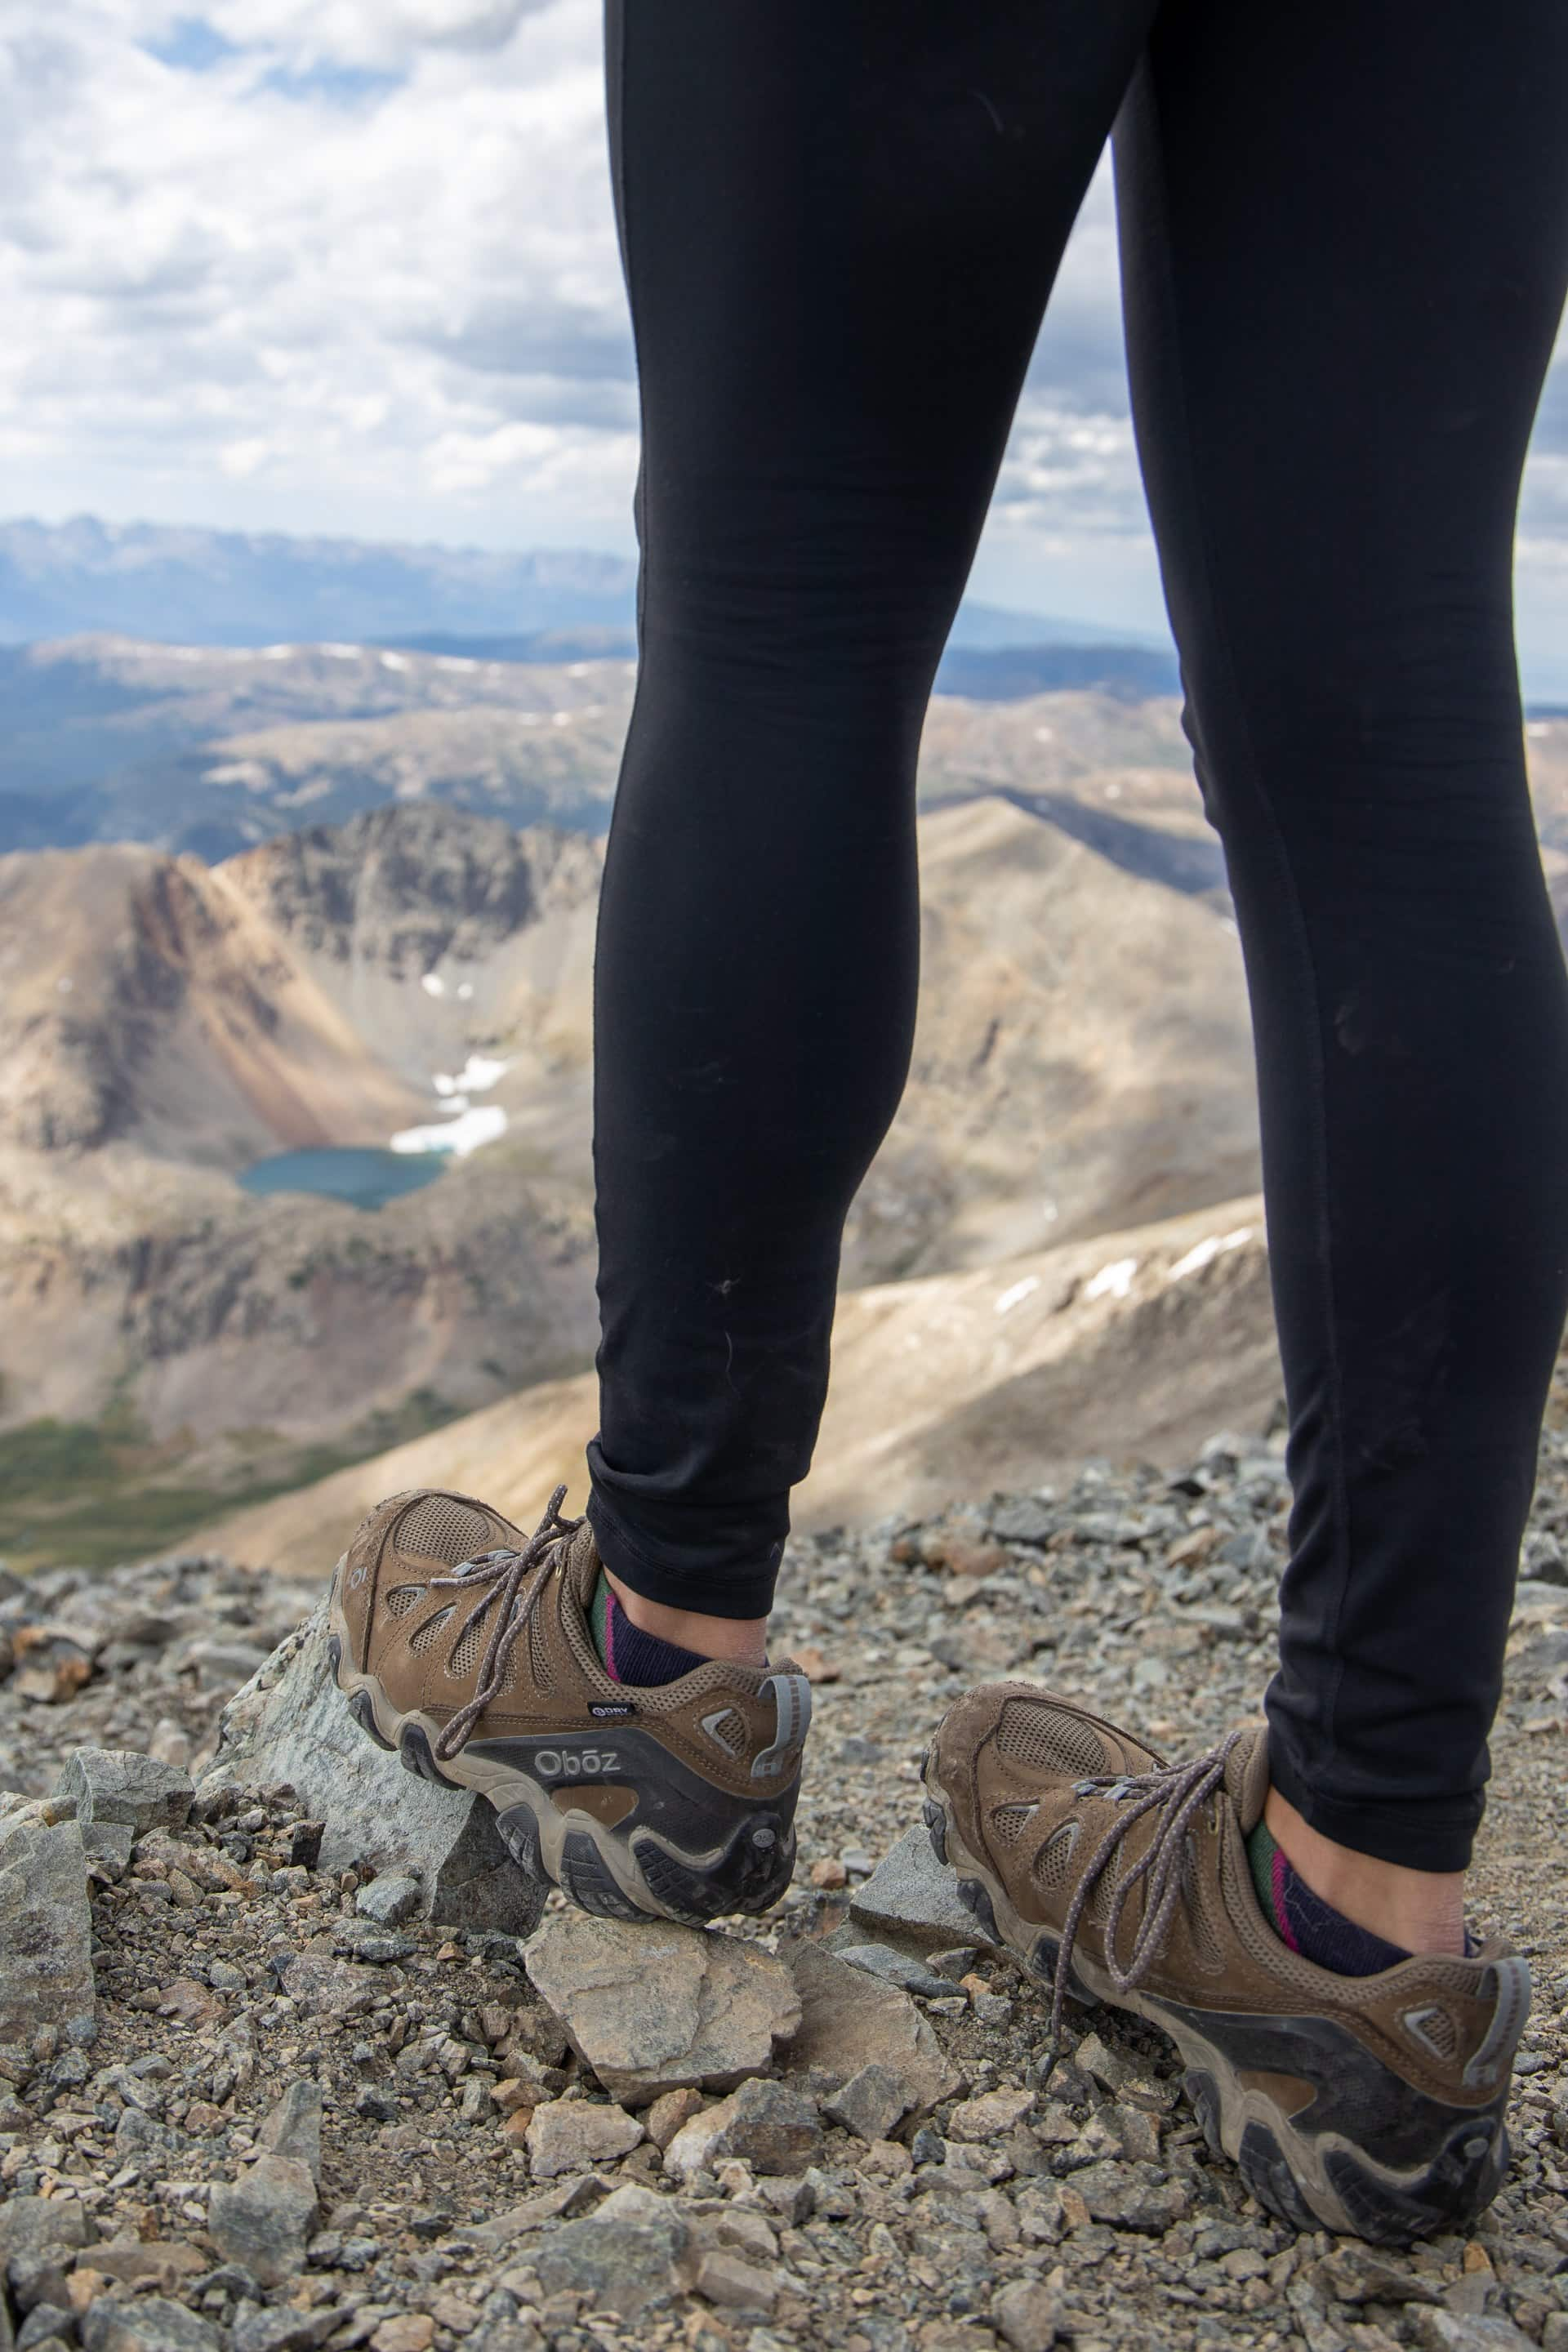 What to wear hiking in fall: Make sure your hiking shoes are waterproof in case you encounter rain.